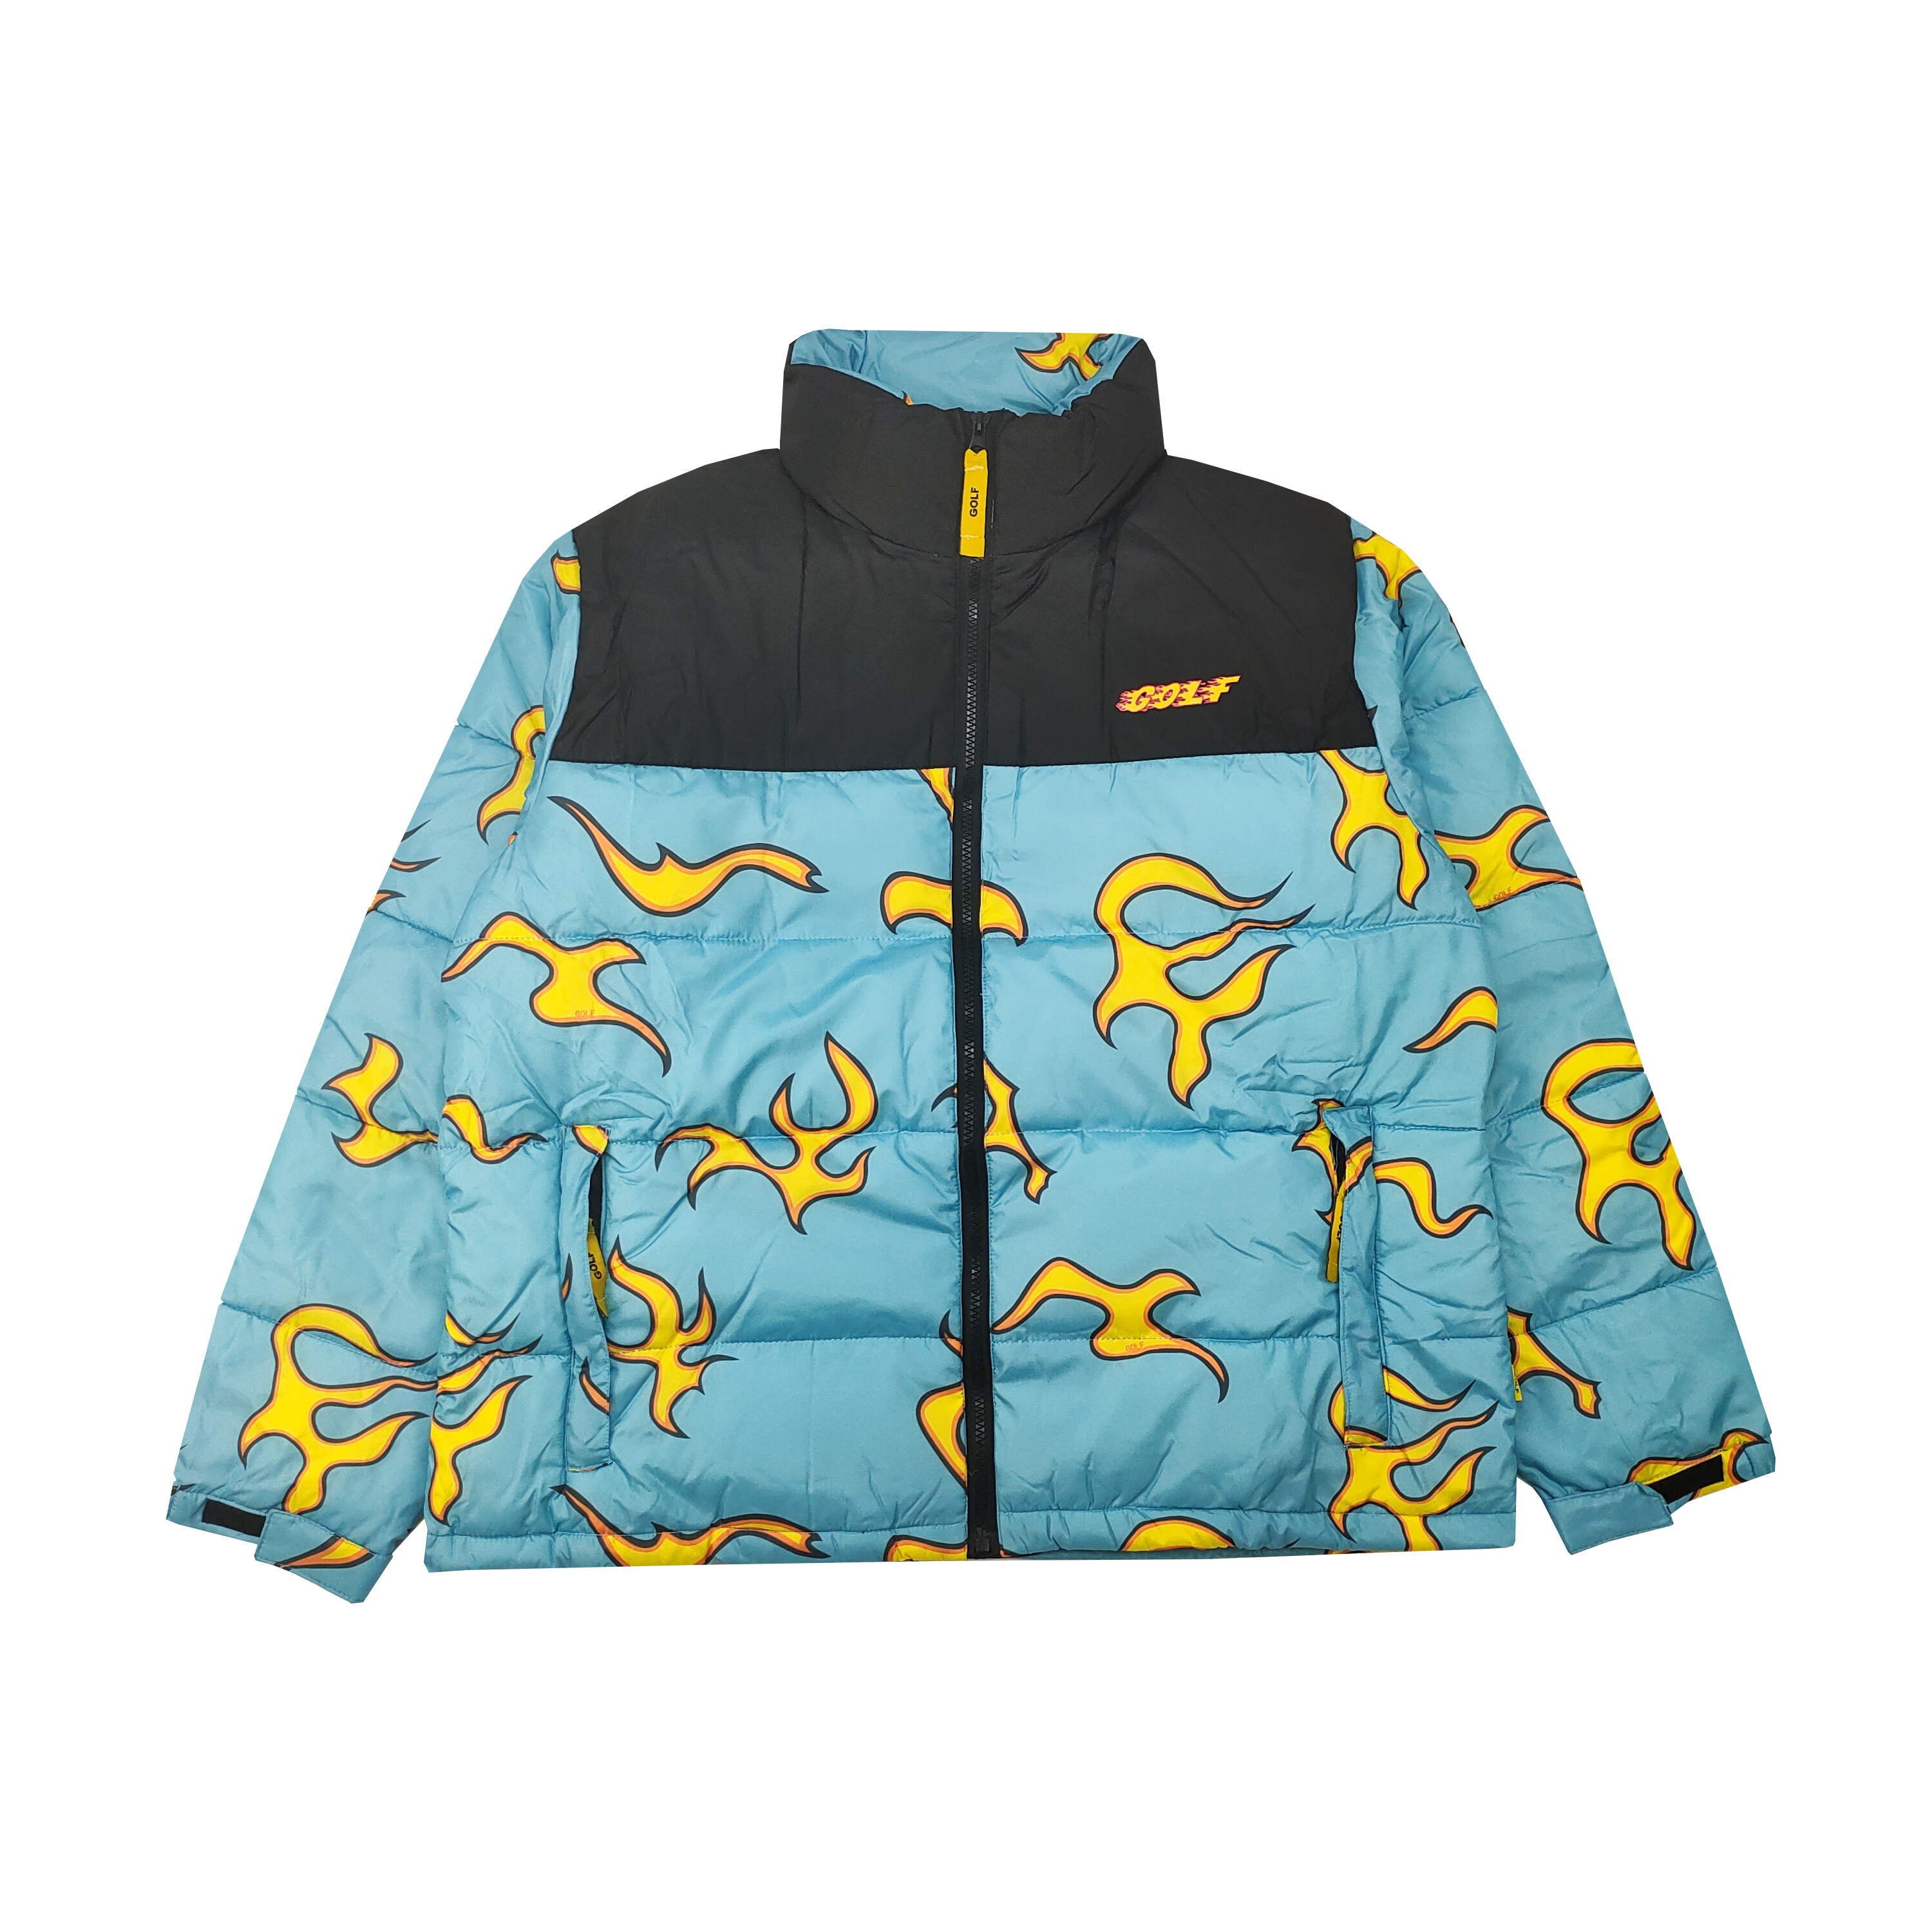 New Luxury Men Golf Flower Le Fleur Tyler The Creator Blue Flame Coats & Jackets / Down Coats Cotton Warm Winter #M38